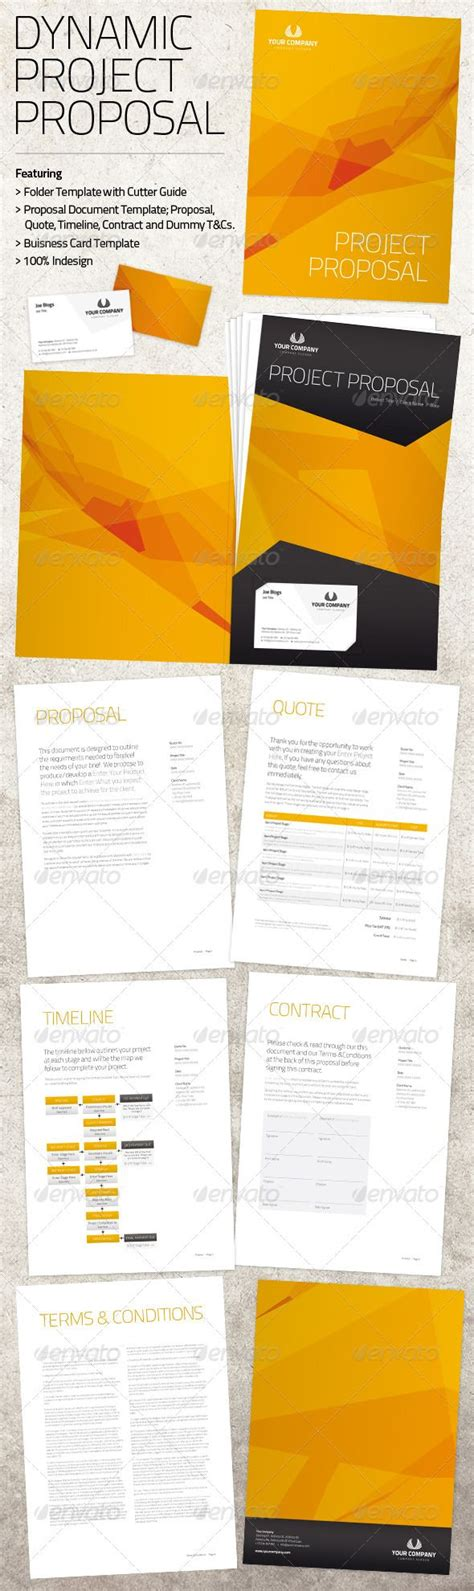 dynamic project proposal pack project proposal template